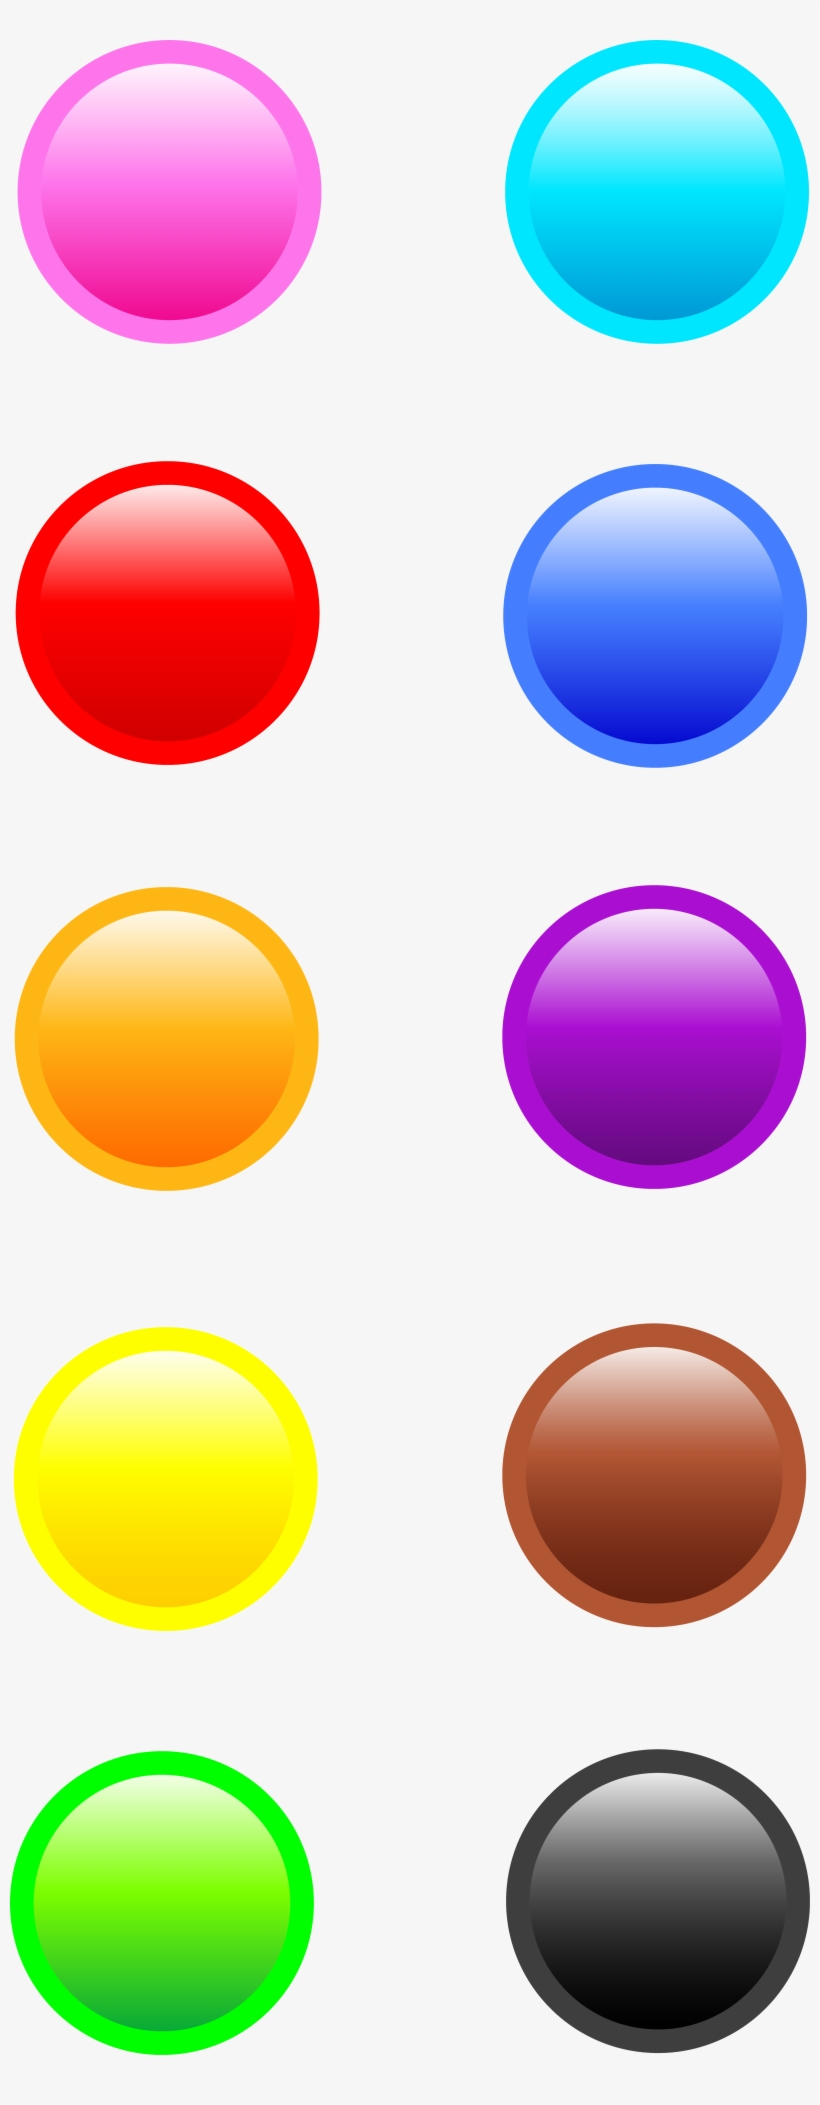 Button Clipart Website Png - Web Button, transparent png #216259